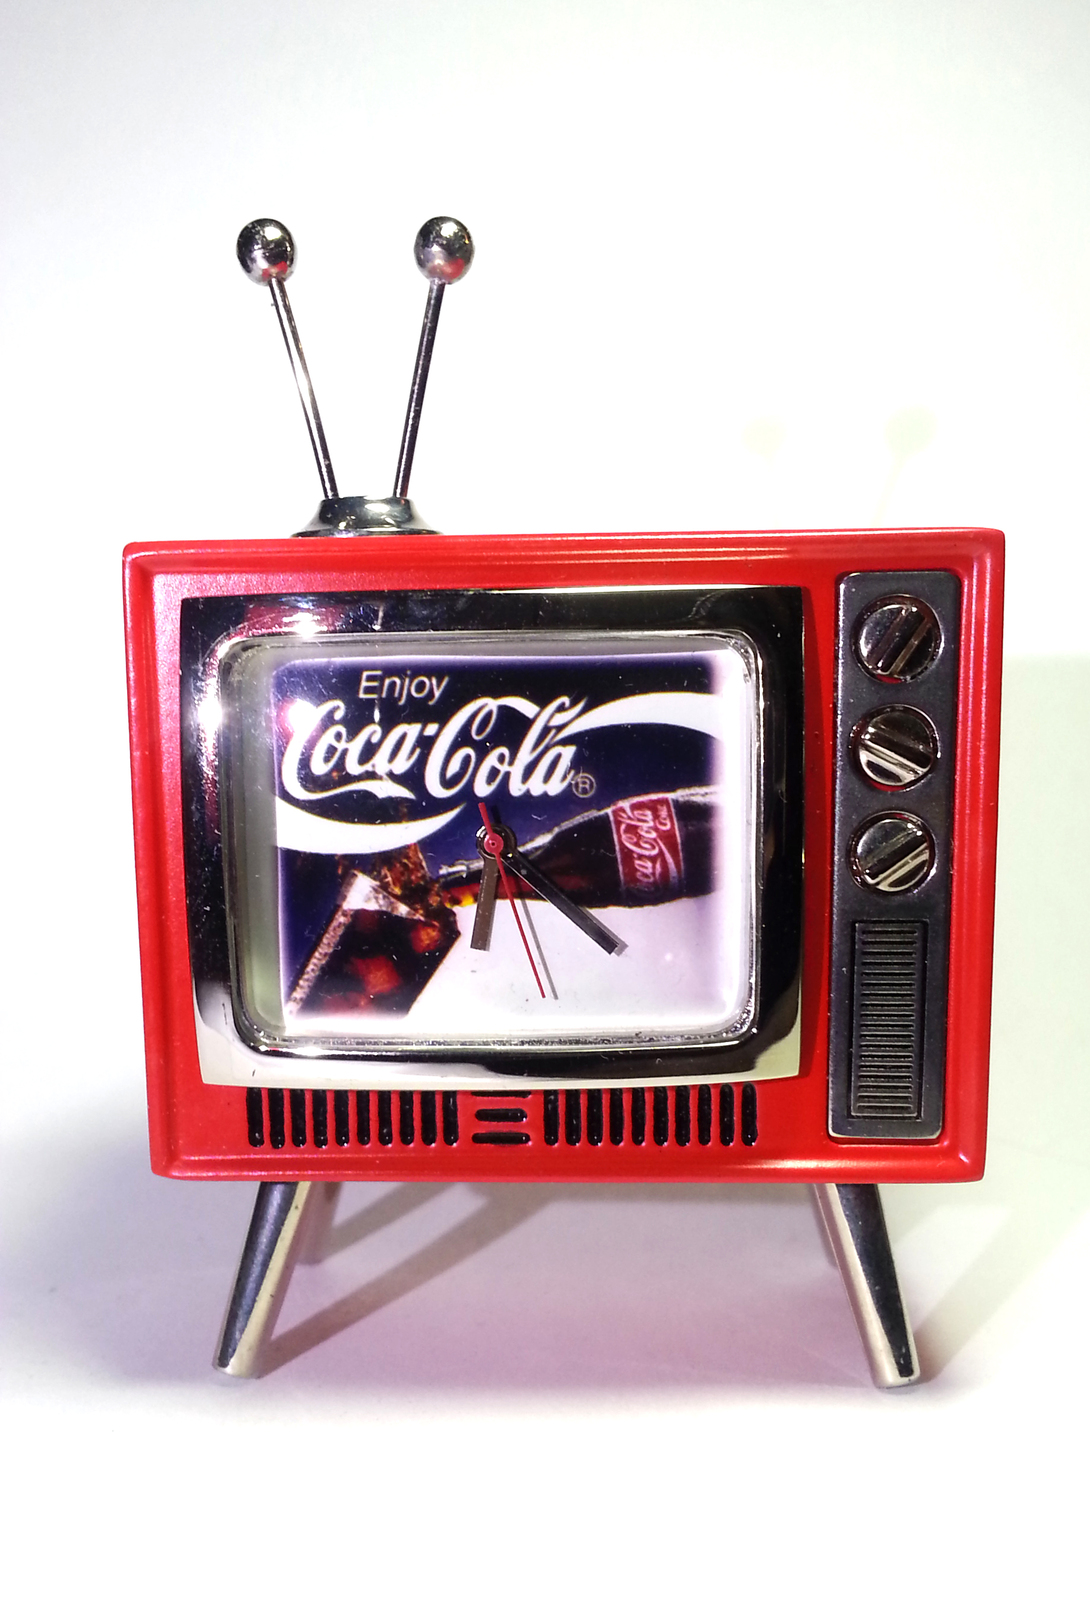 Coca Cola Mini Tv Shaped Desk Clock Enjoy Tested Works